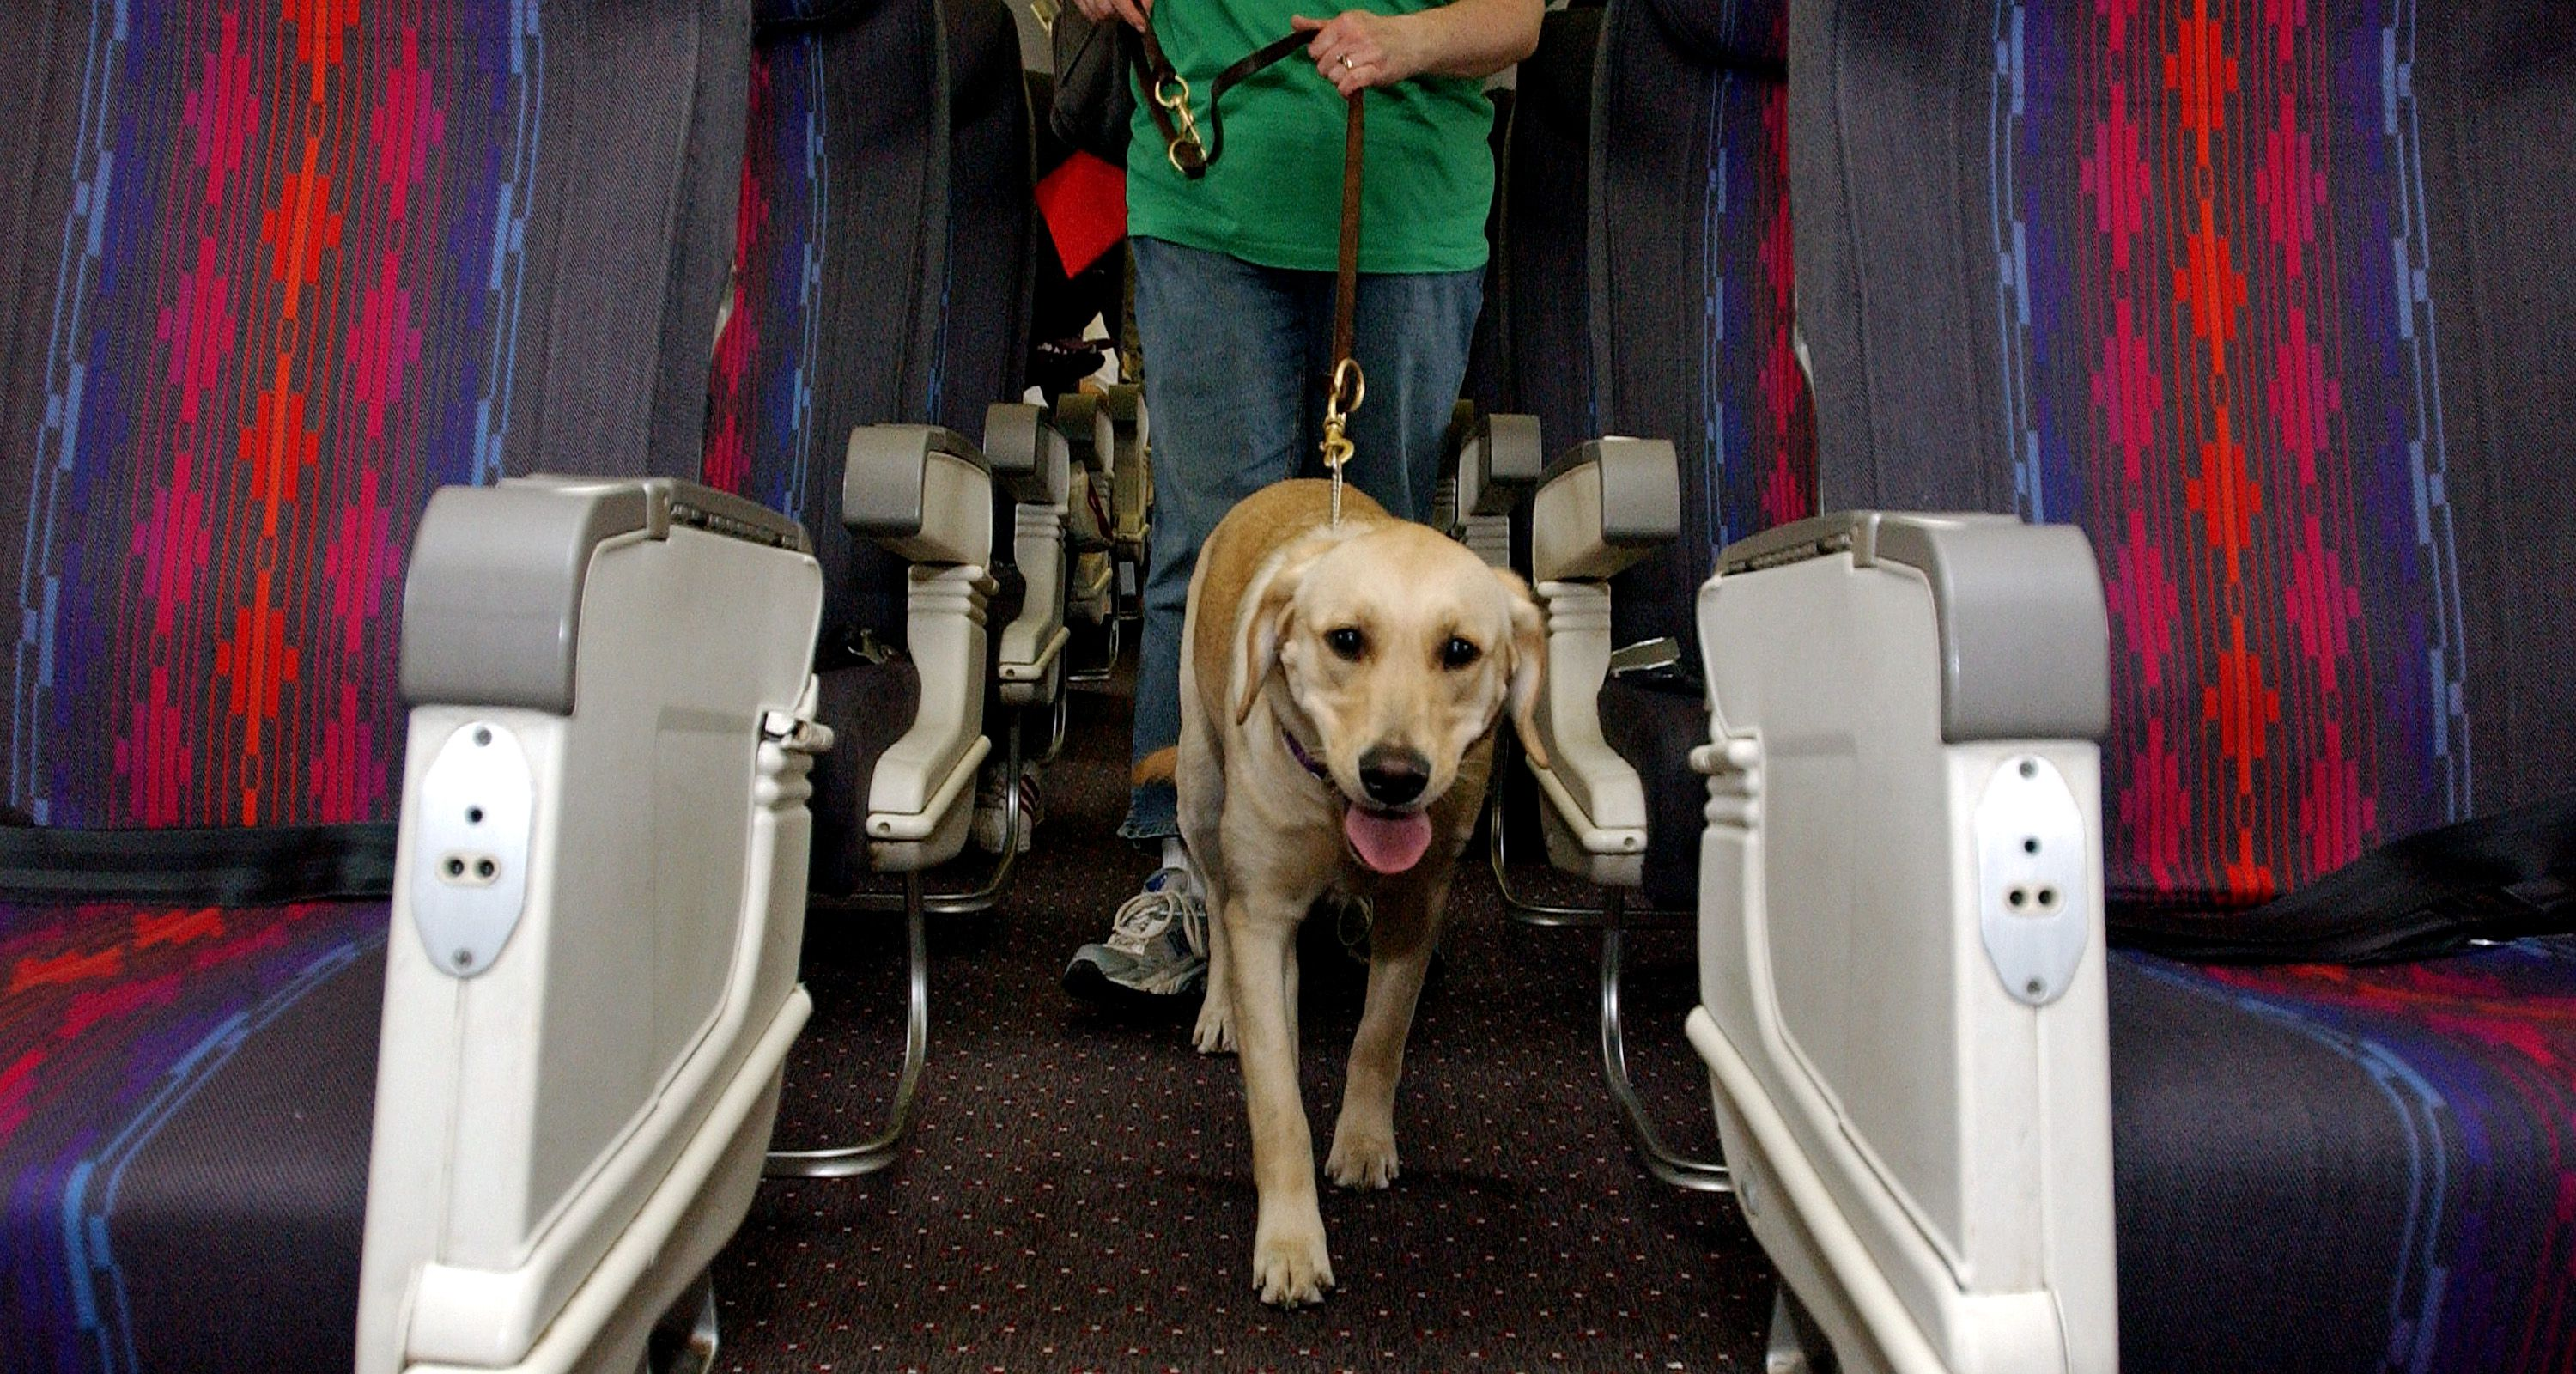 Taking Your Service Animal Through Airport Security